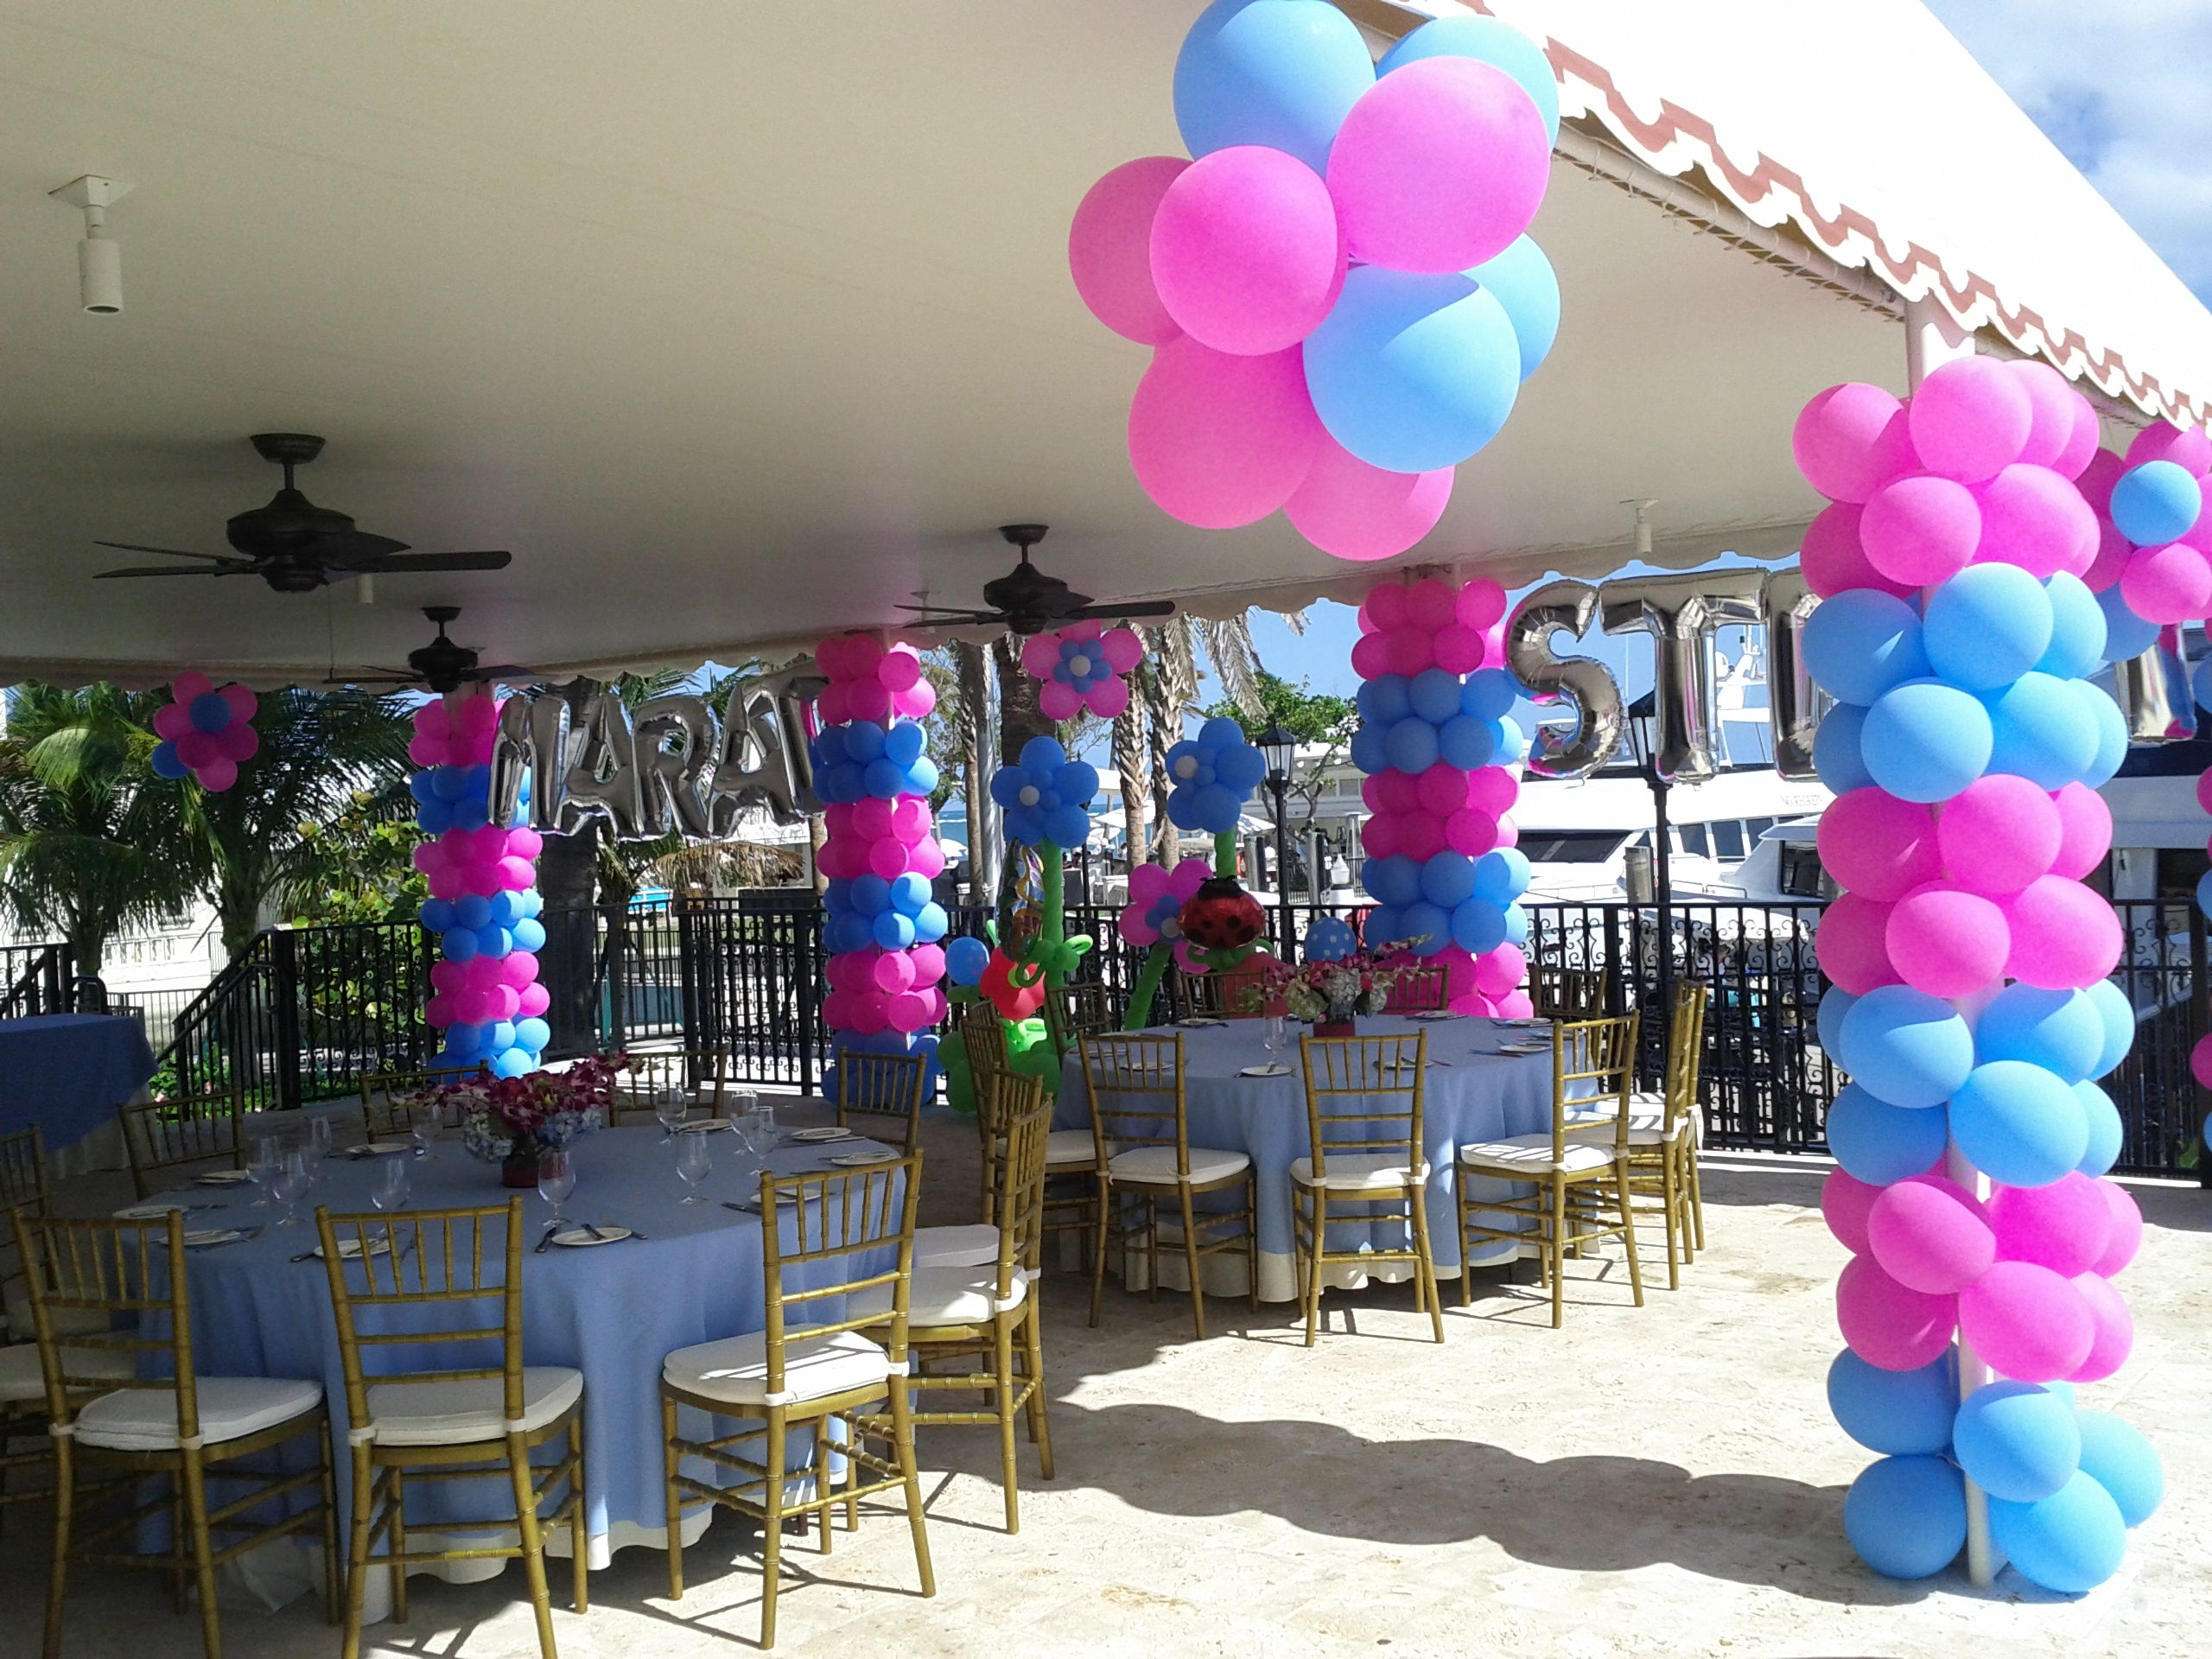 Party decorations miami baby shower balloon decorations - Balloon Column Balloon Flowers Balloon Ceiling Decor Balloon Name Www Dreamarkevents